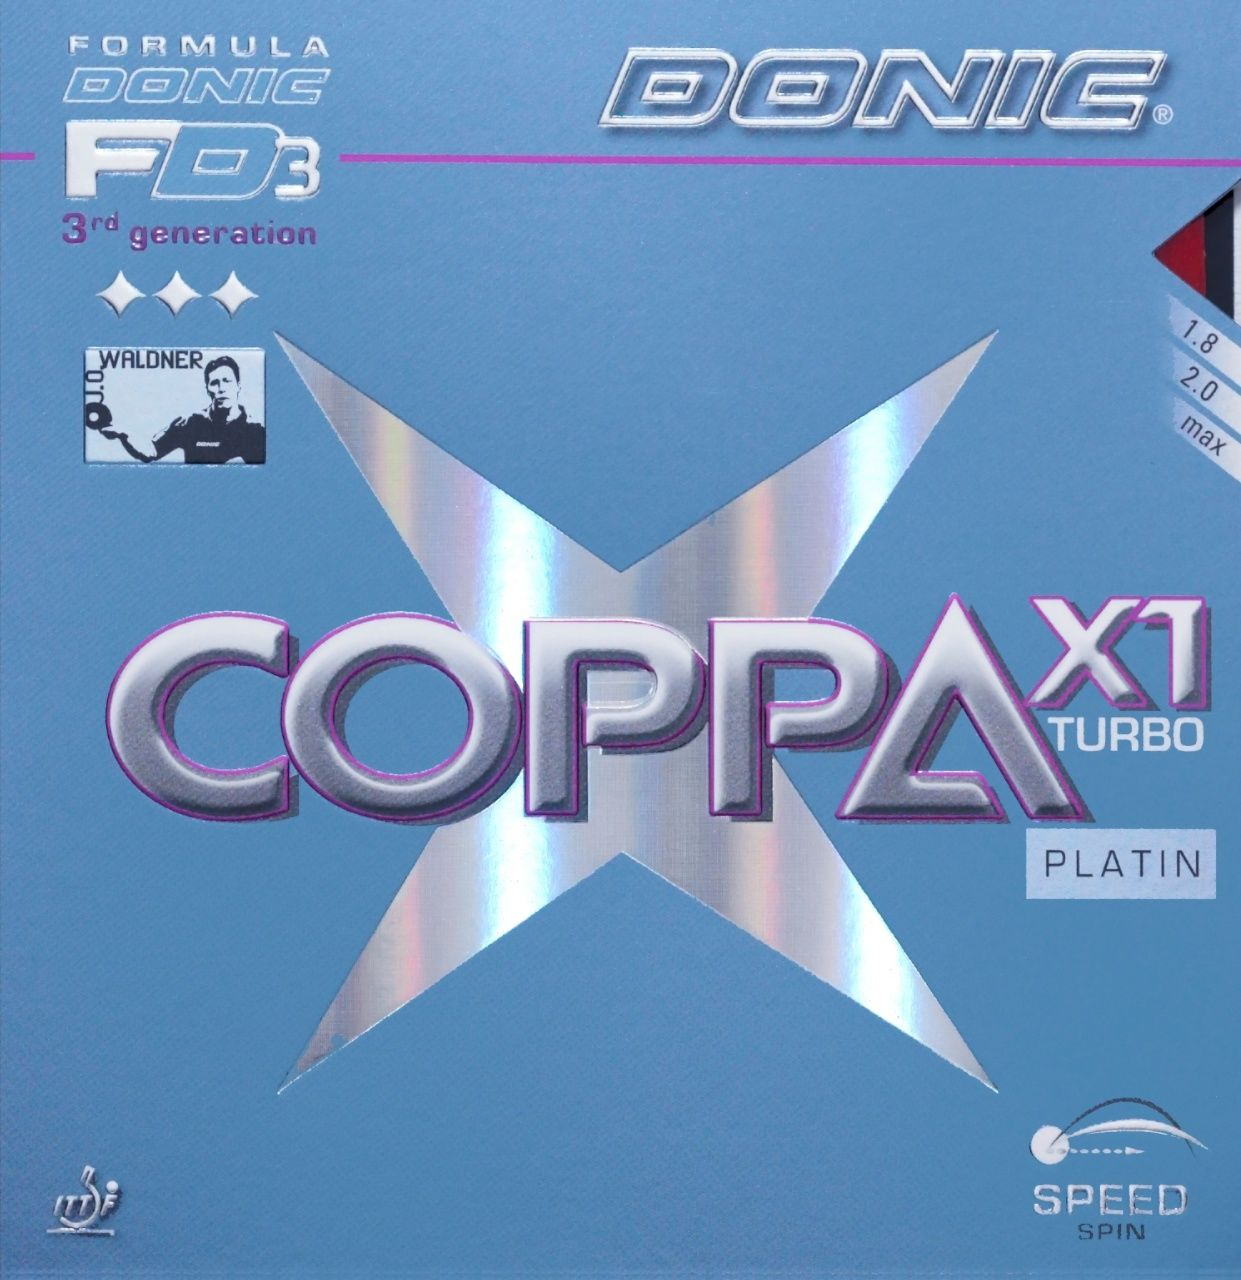 Накладка DONIC Coppa X1 Turbo (Platin)